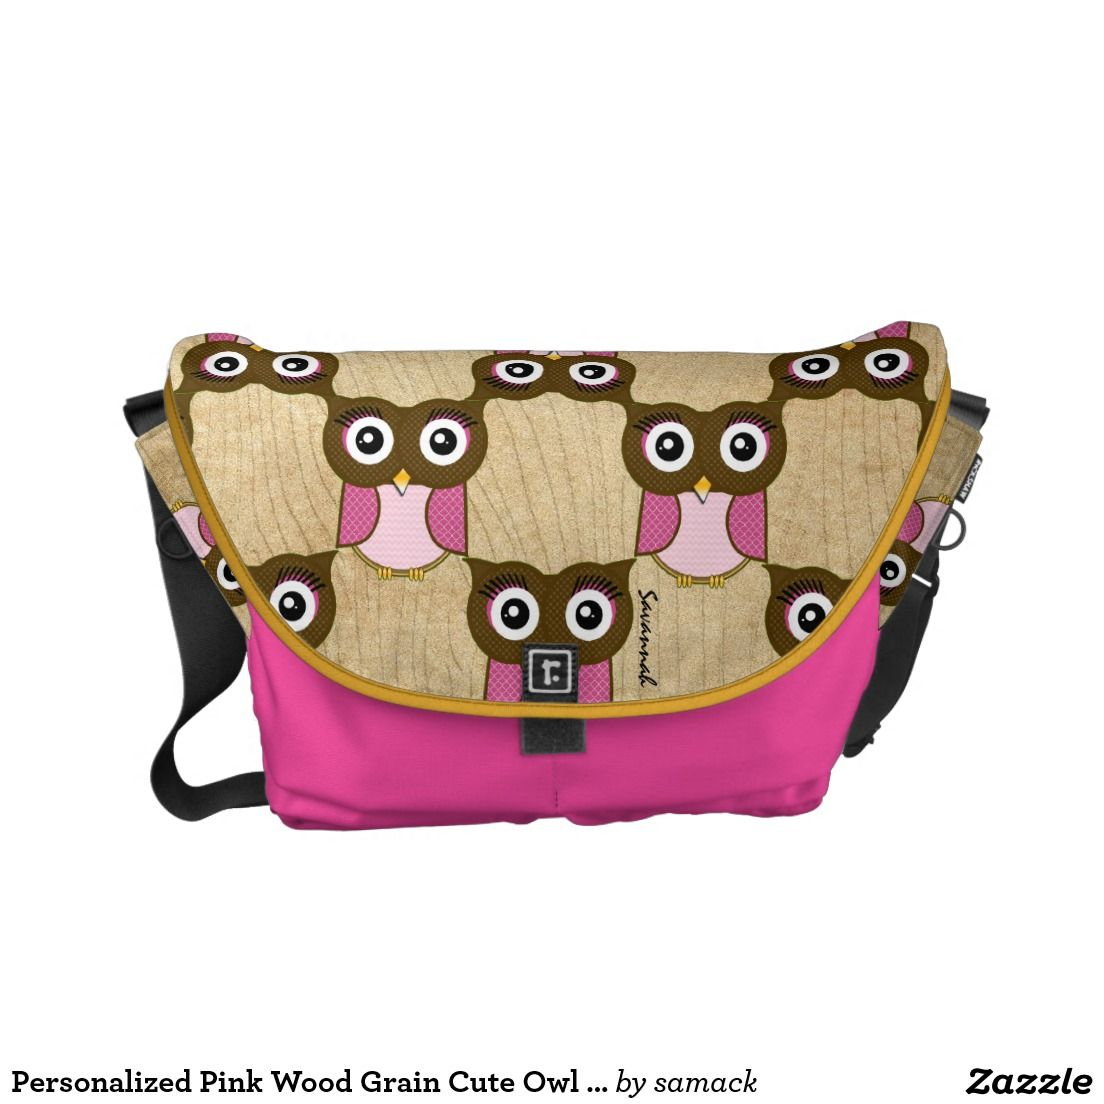 Personalized Pink Wood Grain Cute Owl Pattern Messenger Bag. Regalos, Gifts. #bolso #bag #DiaDeLasMadres #MothersDay